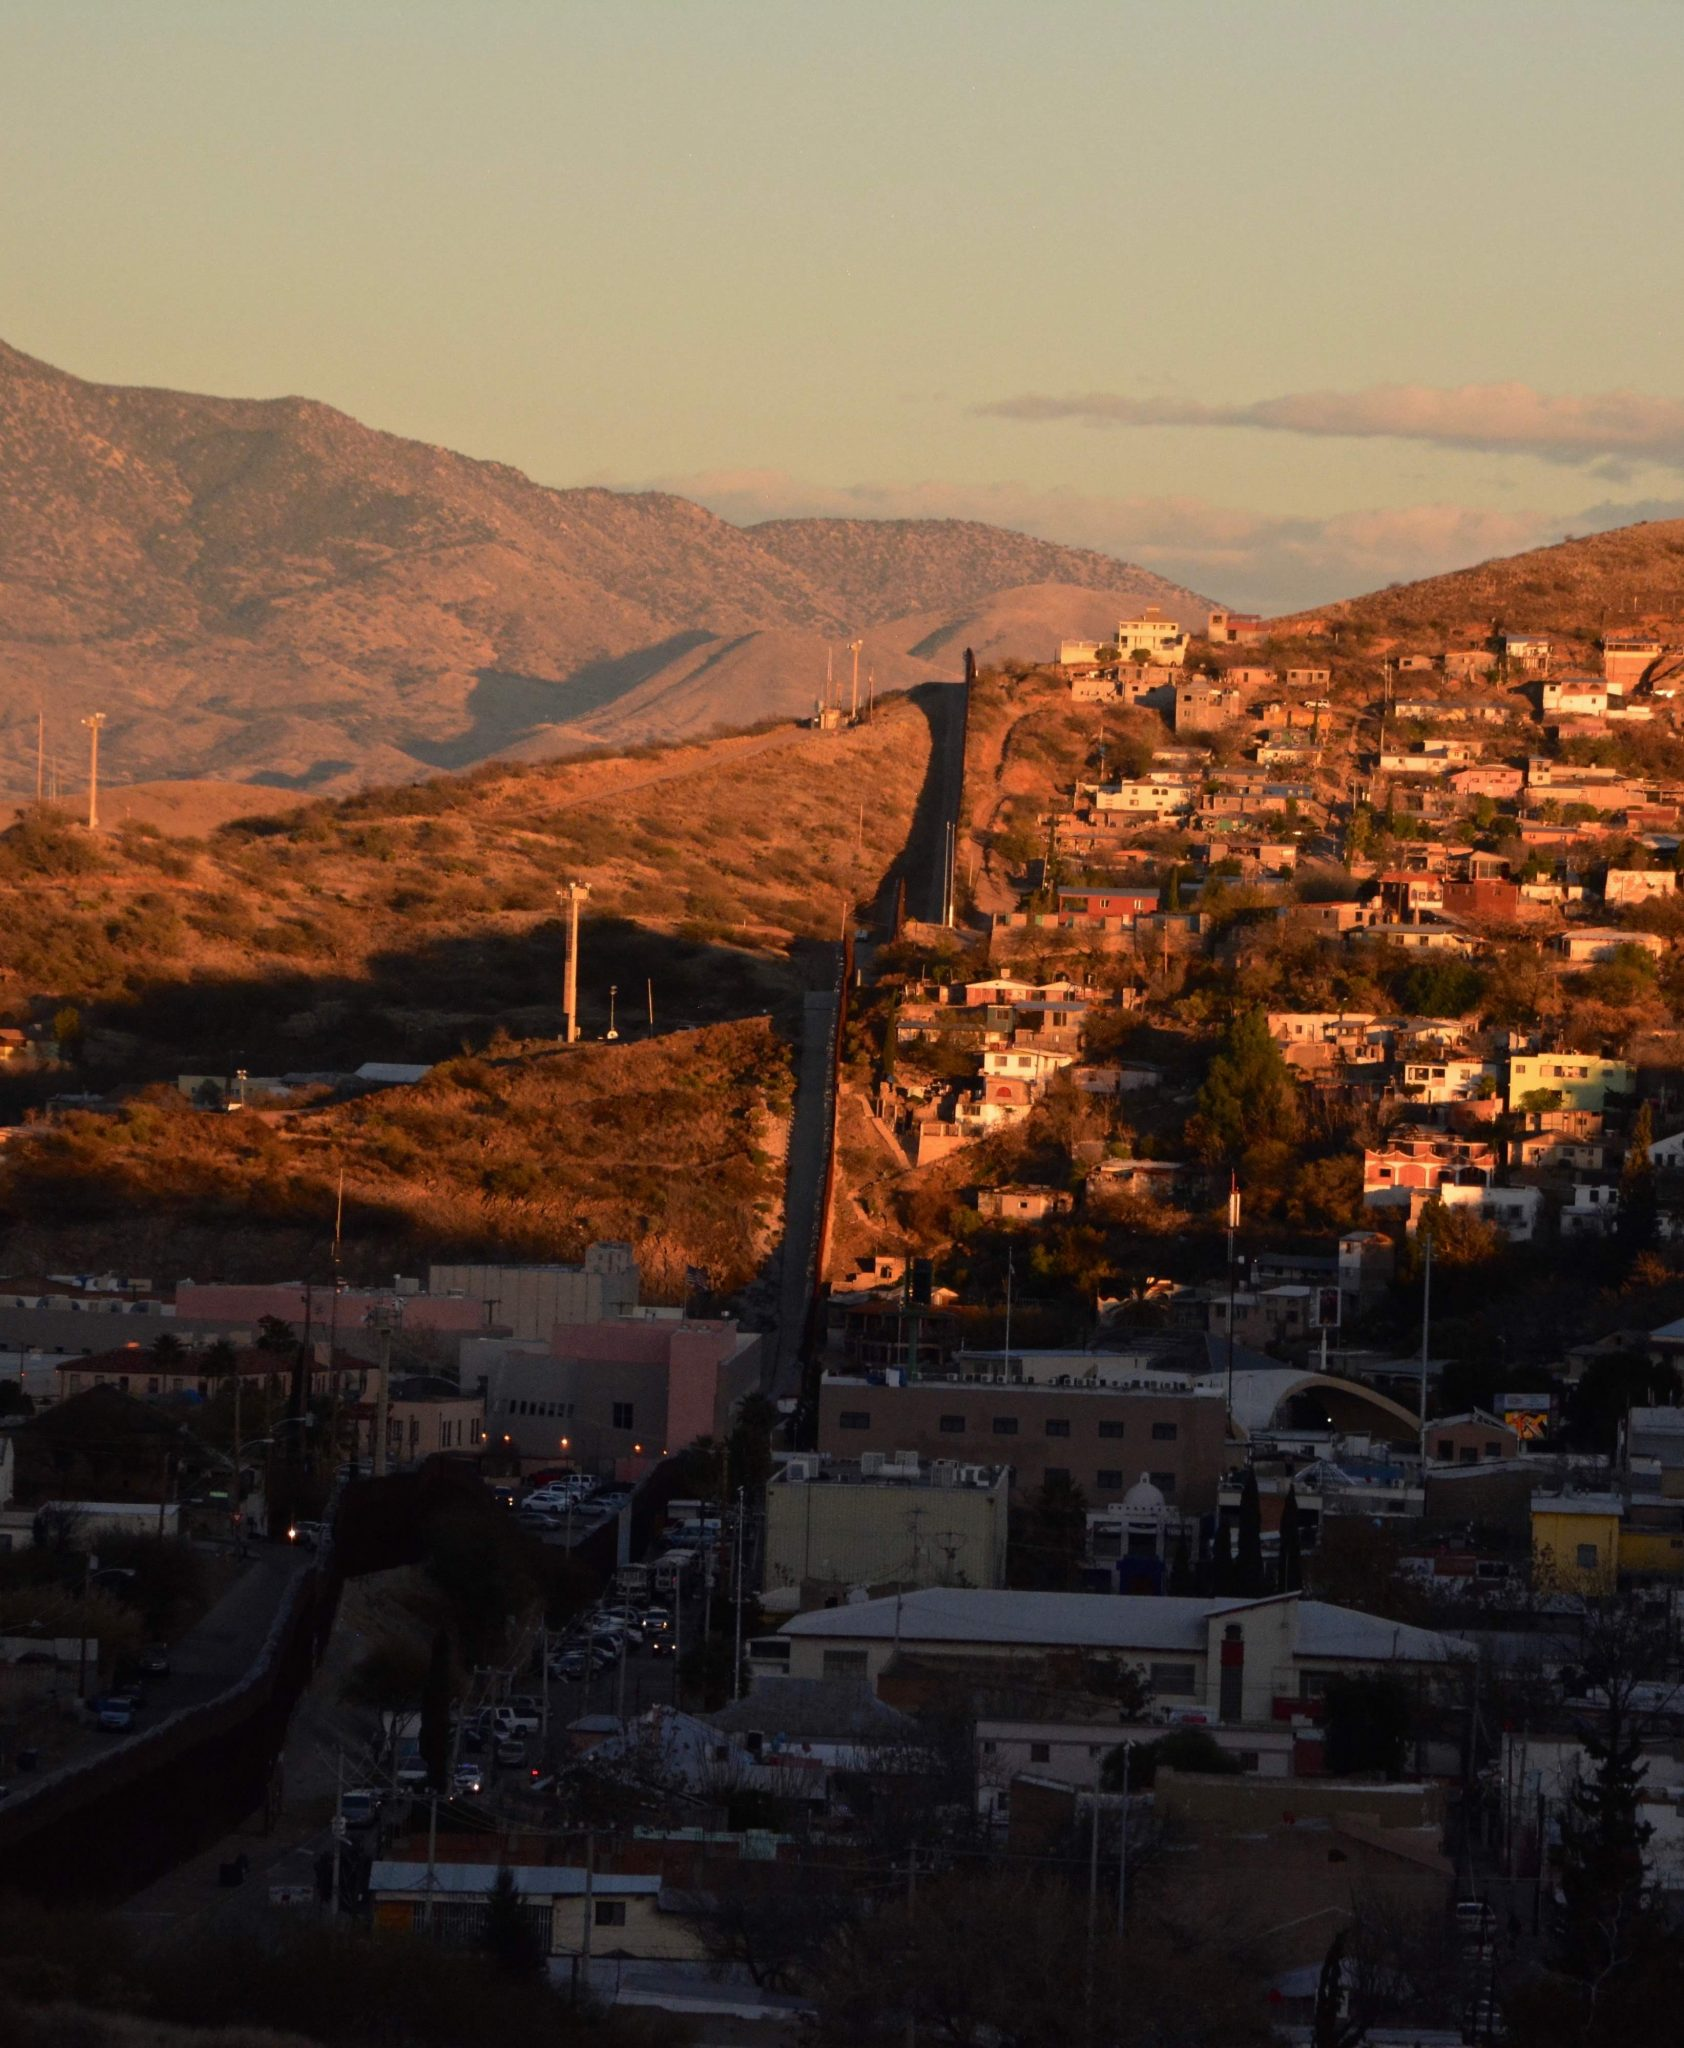 Alfonso's Story: Escaping to Nogales